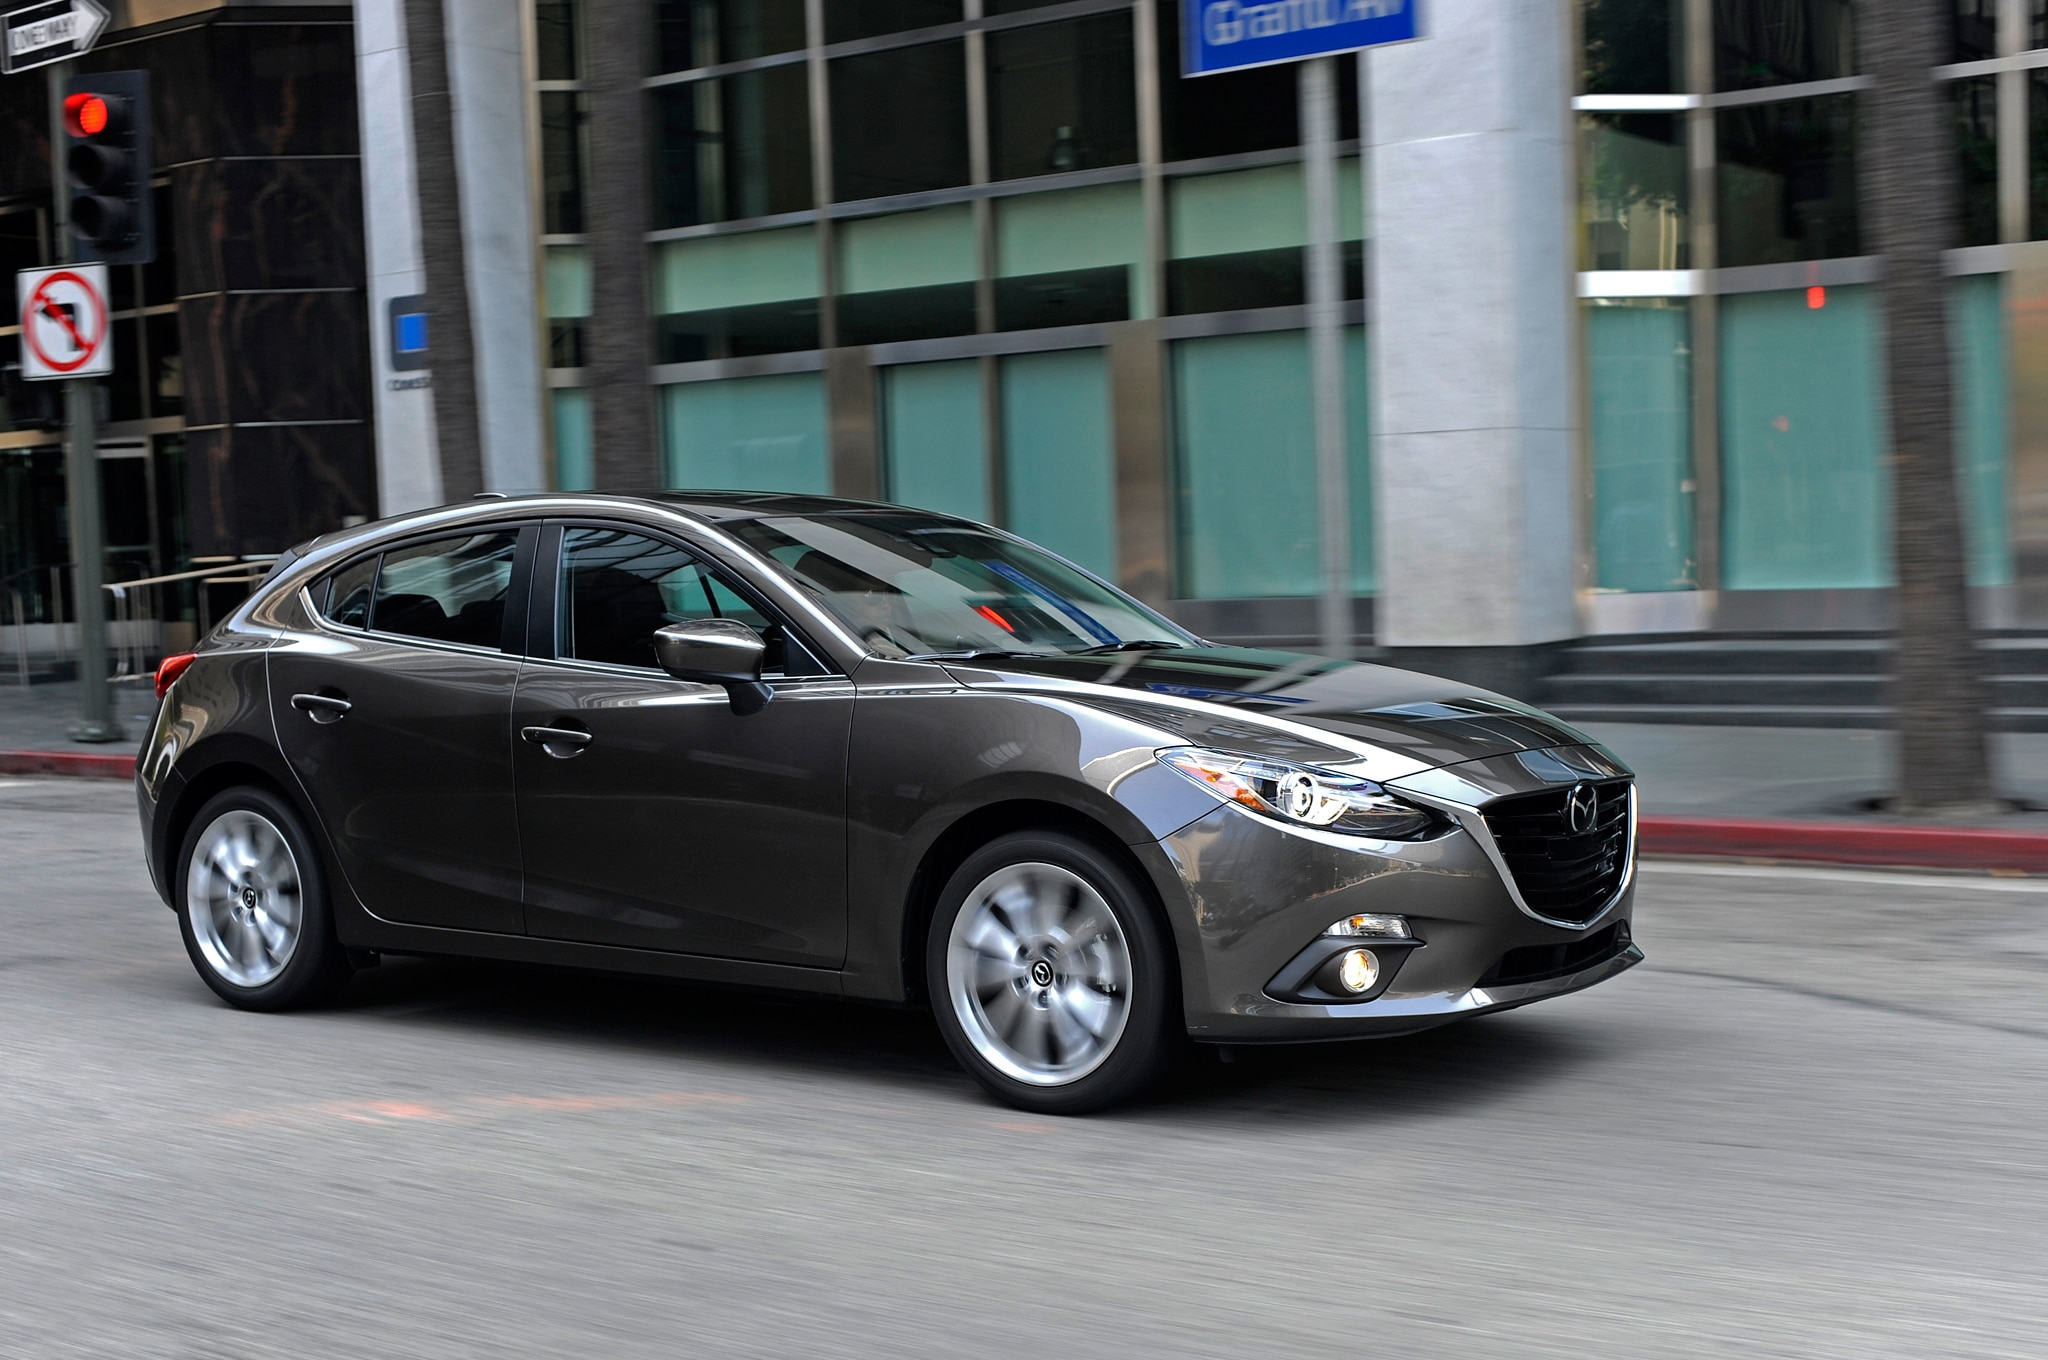 2015 mazda 3 updated gains manual transmission for 2 5l engine. Black Bedroom Furniture Sets. Home Design Ideas